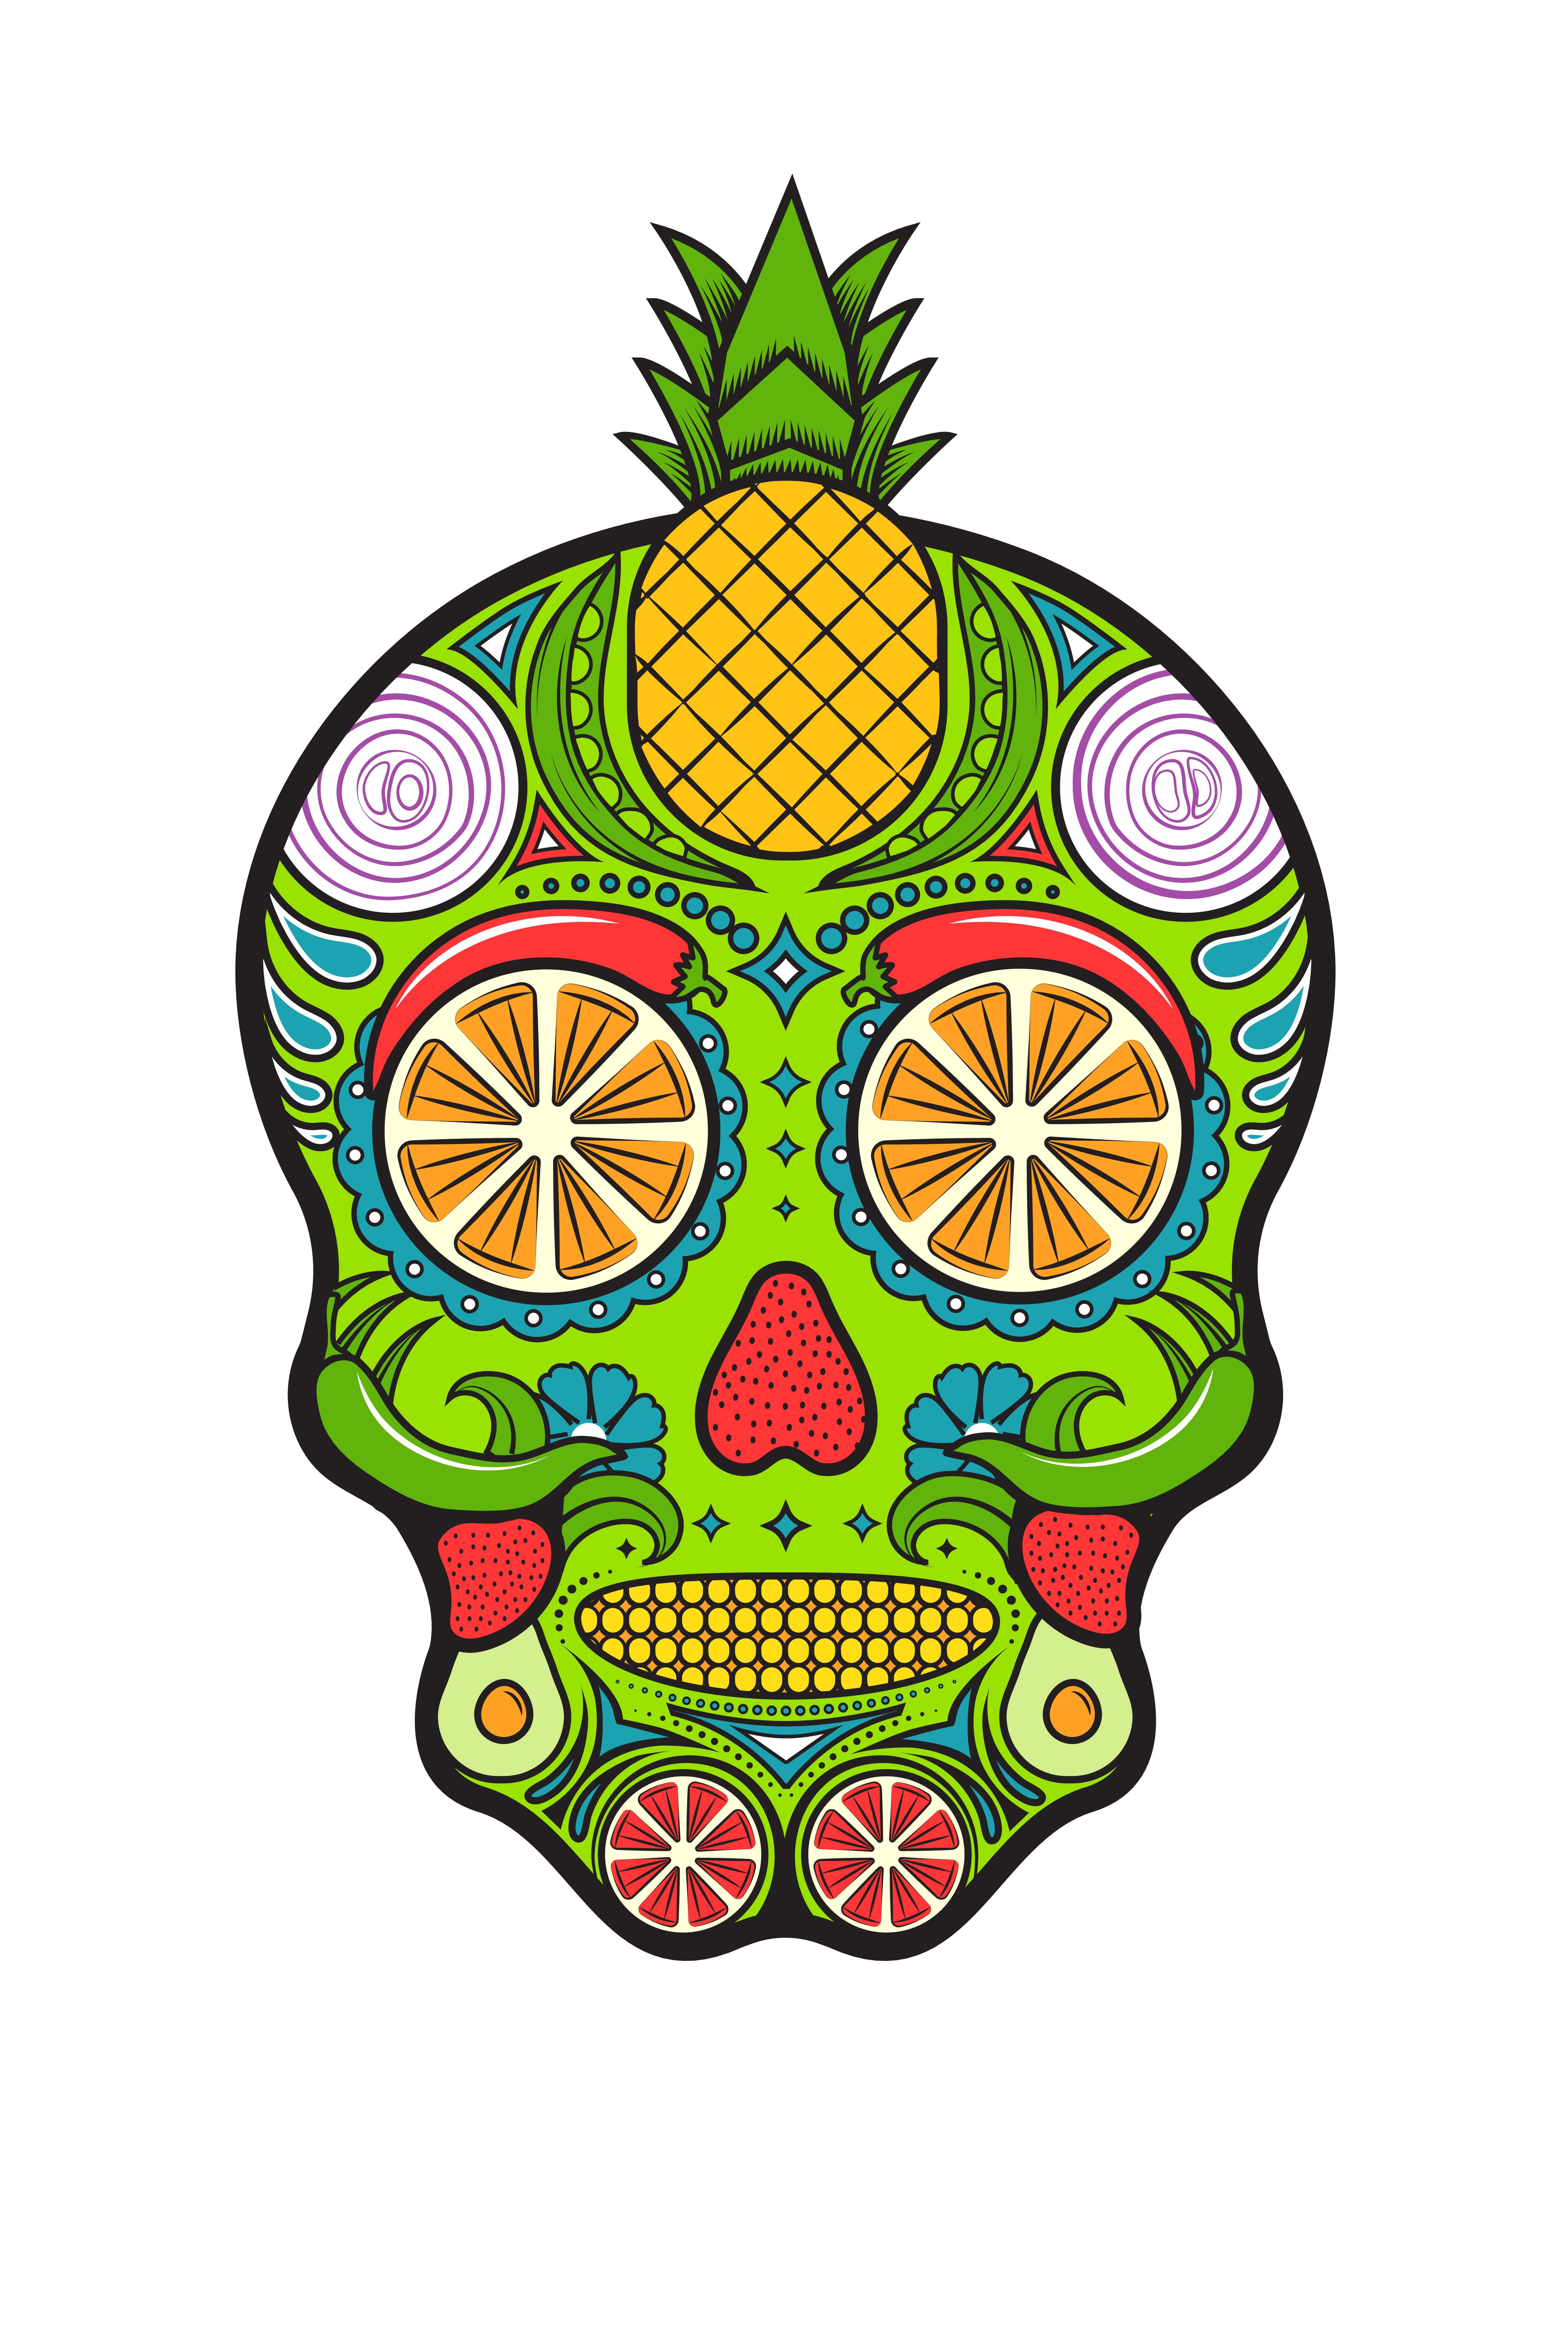 Sugar Skull made out of Fruits and Vegetables for our annual employee T-shirt